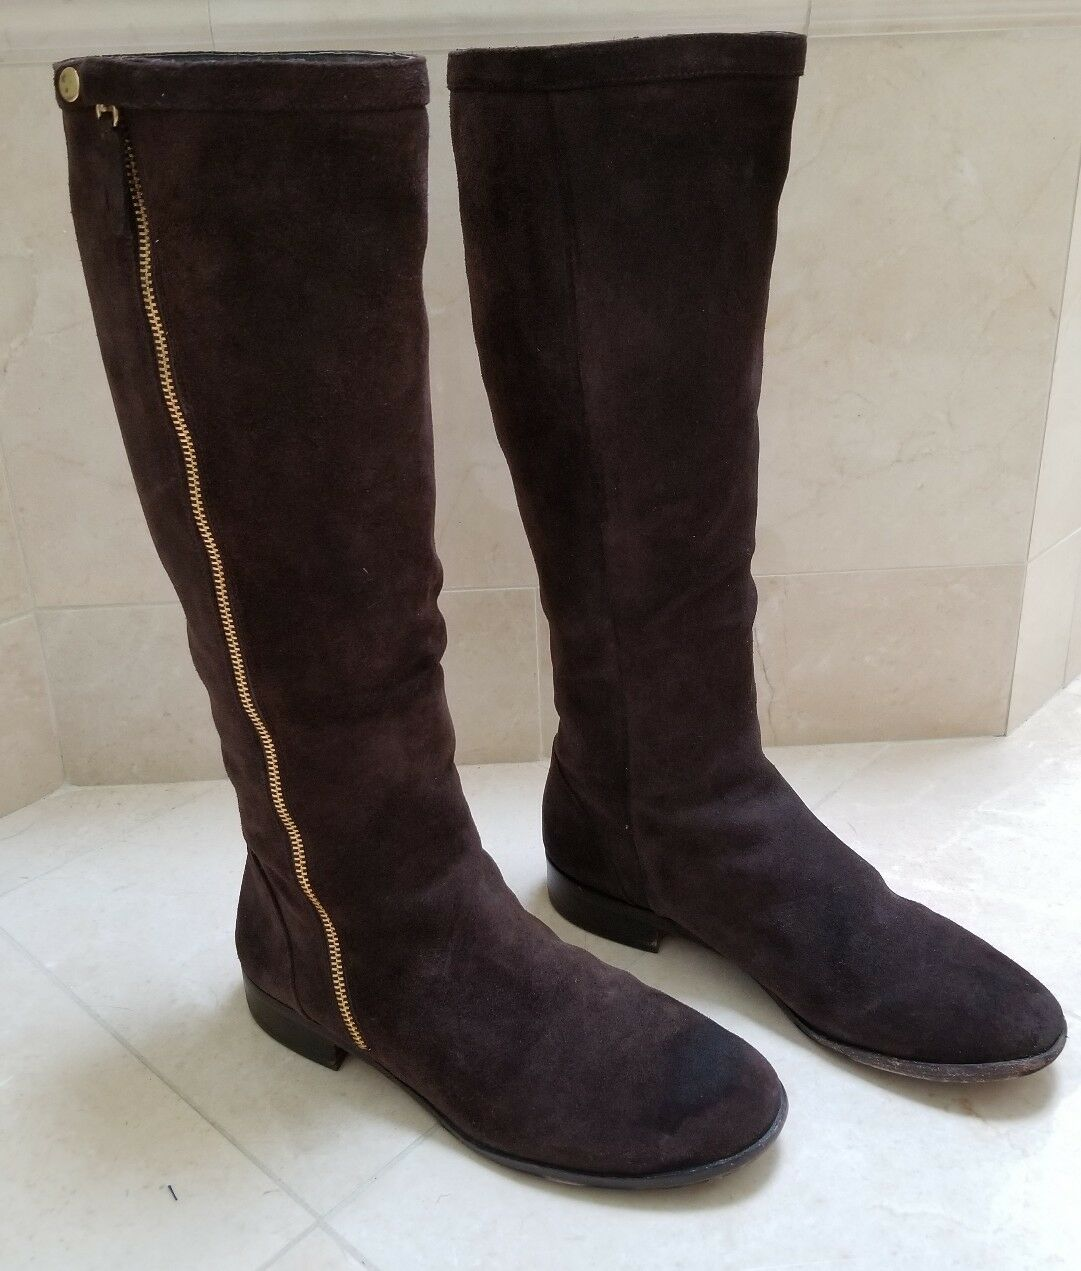 J CREW Brown Suede Knee High Riding Boots Womans Size 9